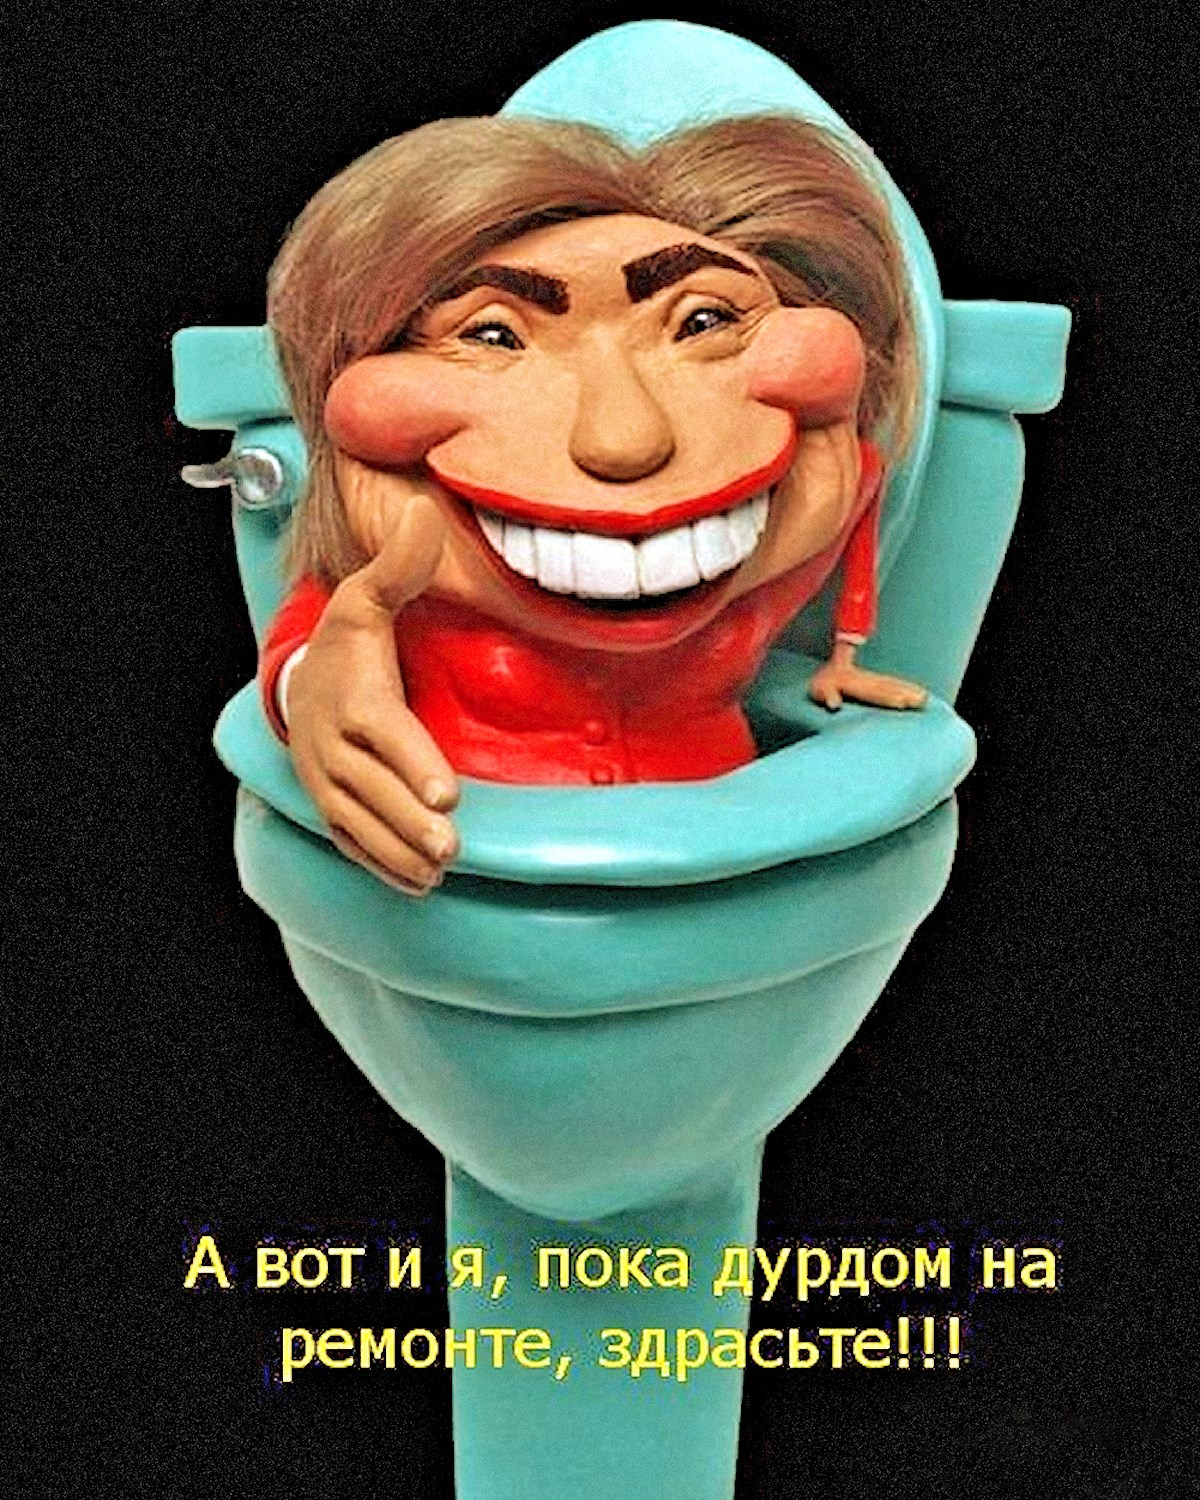 00 Hilary Clinton caricature. Russian. 160615